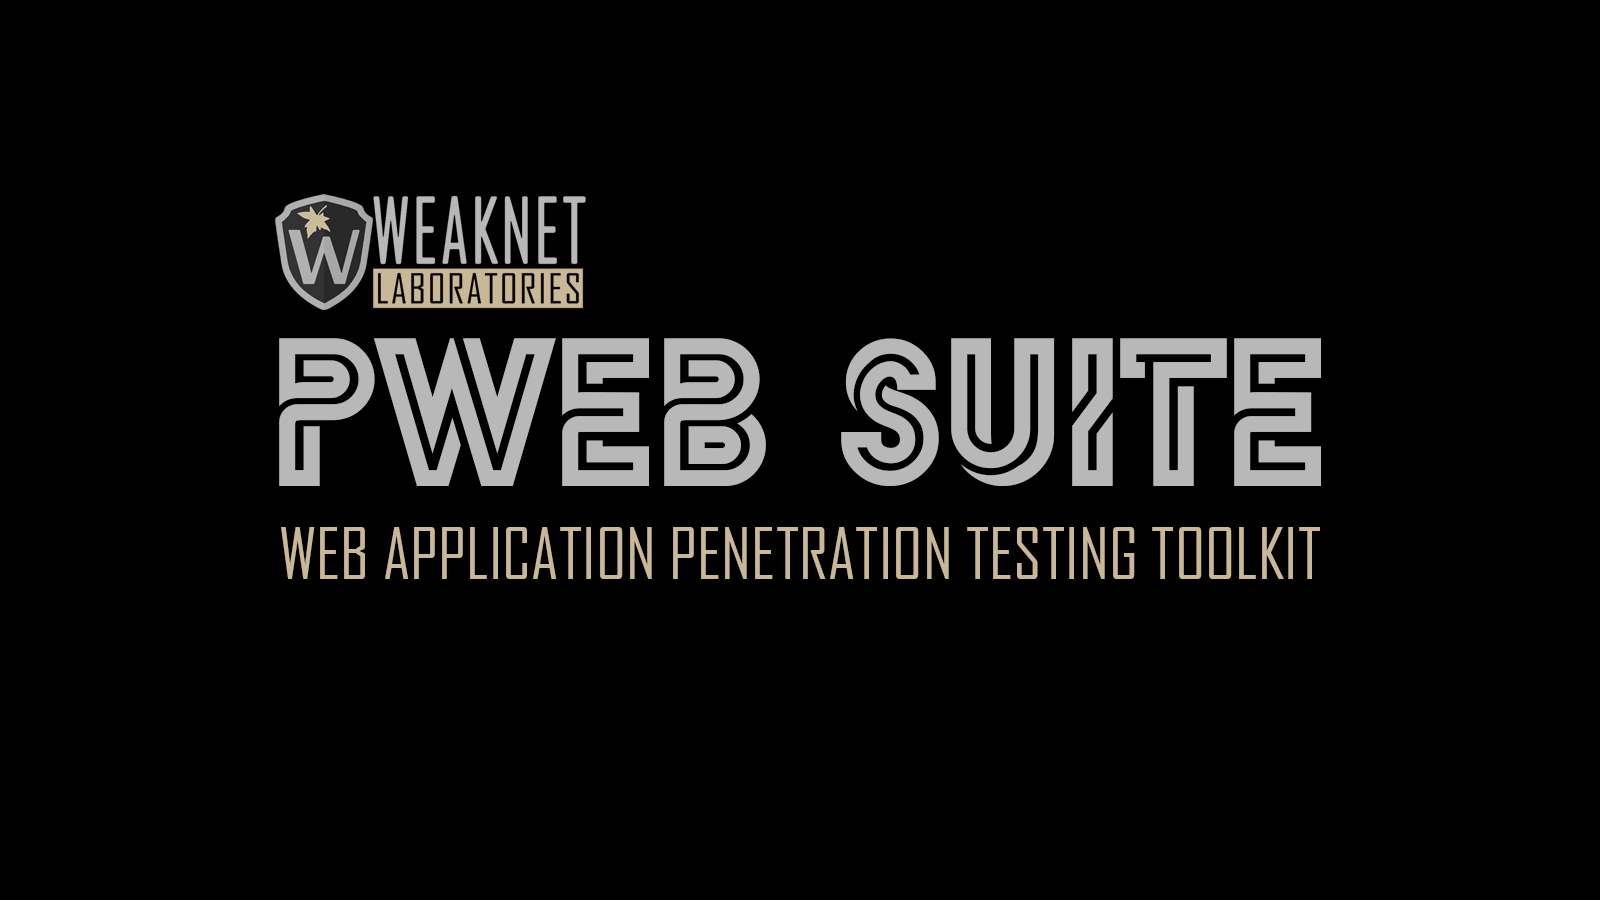 pWeb Suite - Web Application Penetration Testing Toolkit